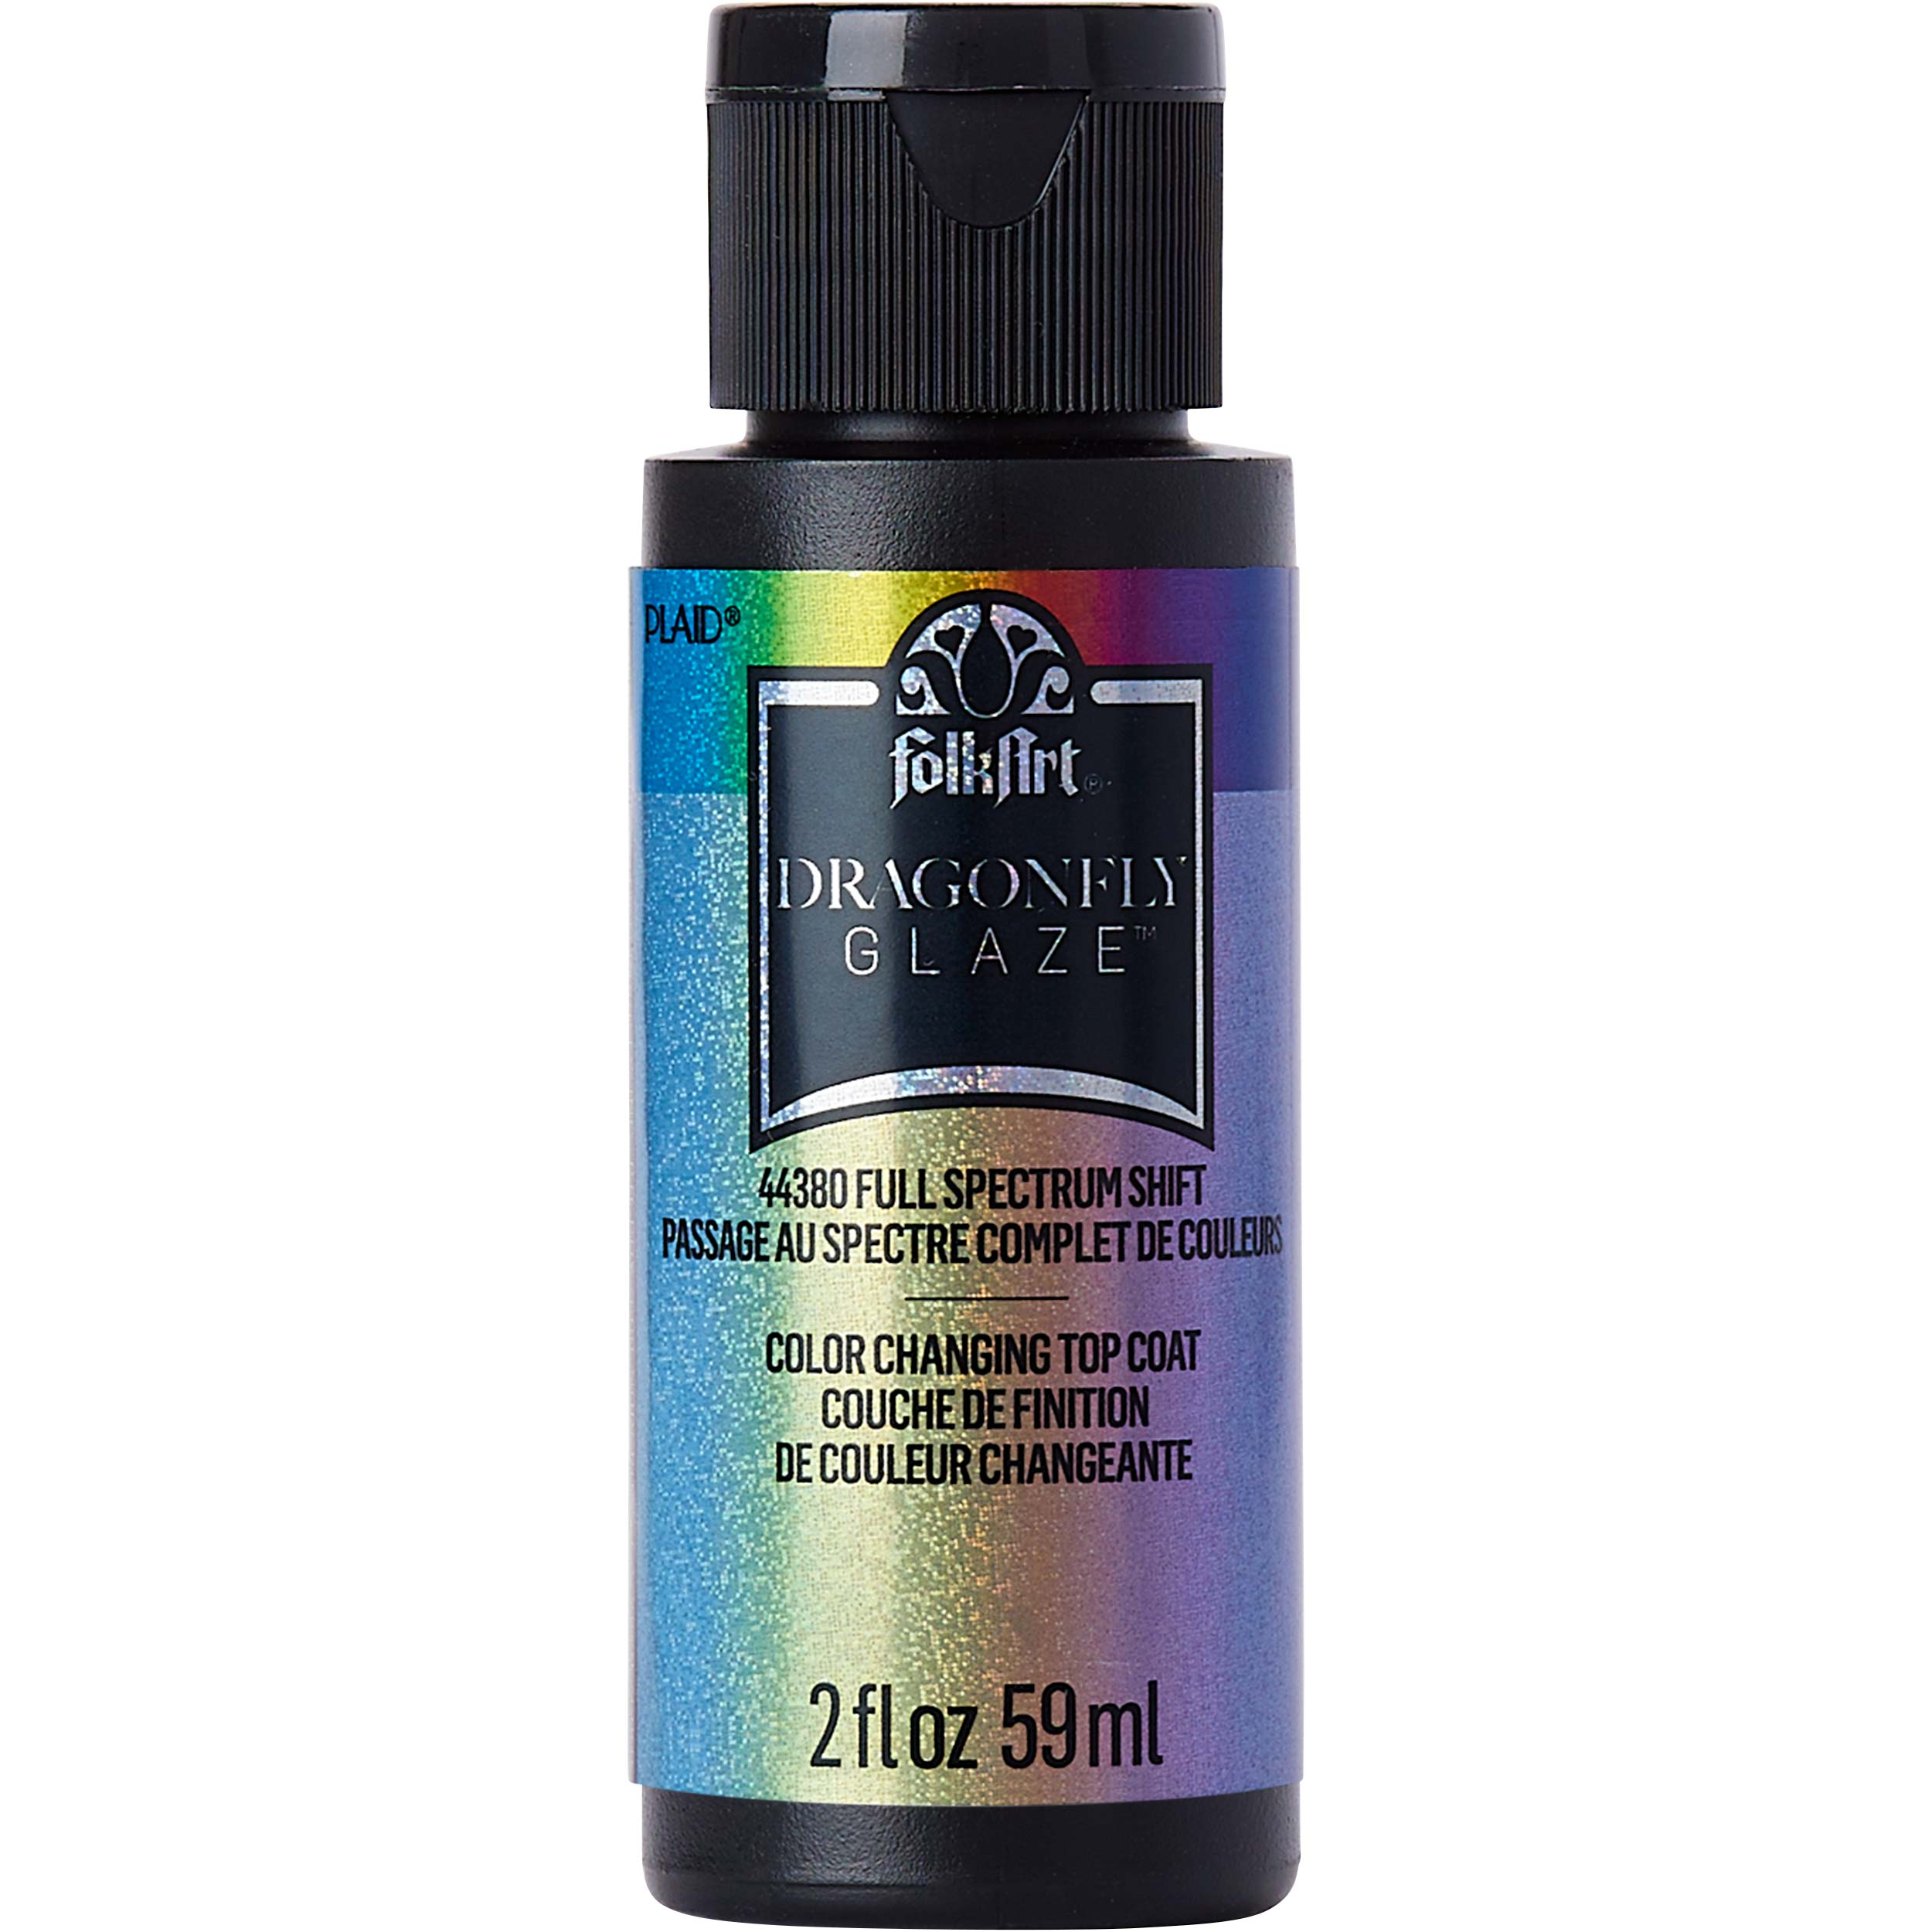 FolkArt ® Dragonfly Glaze™ - Full Spectrum, 2 oz. - 44380